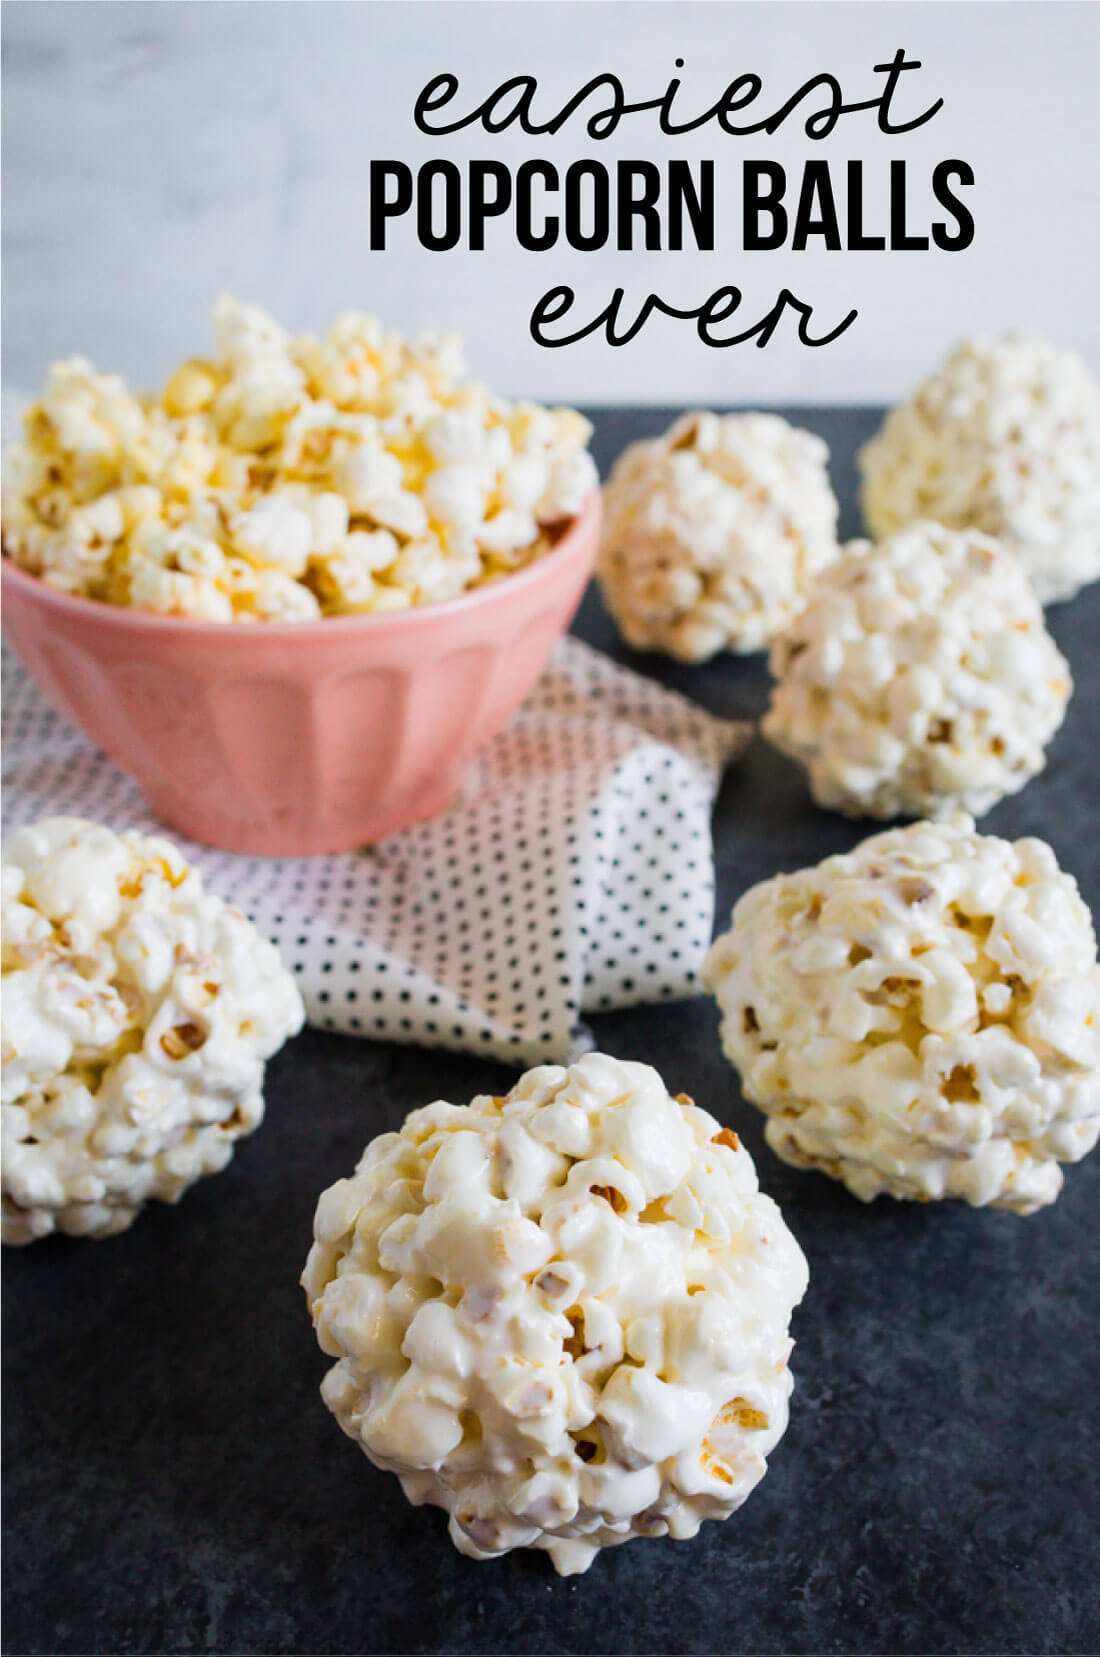 the Easiest Popcorn Balls Ever - you only need a few ingredients to make them! www.thirtyhandmadedays.com